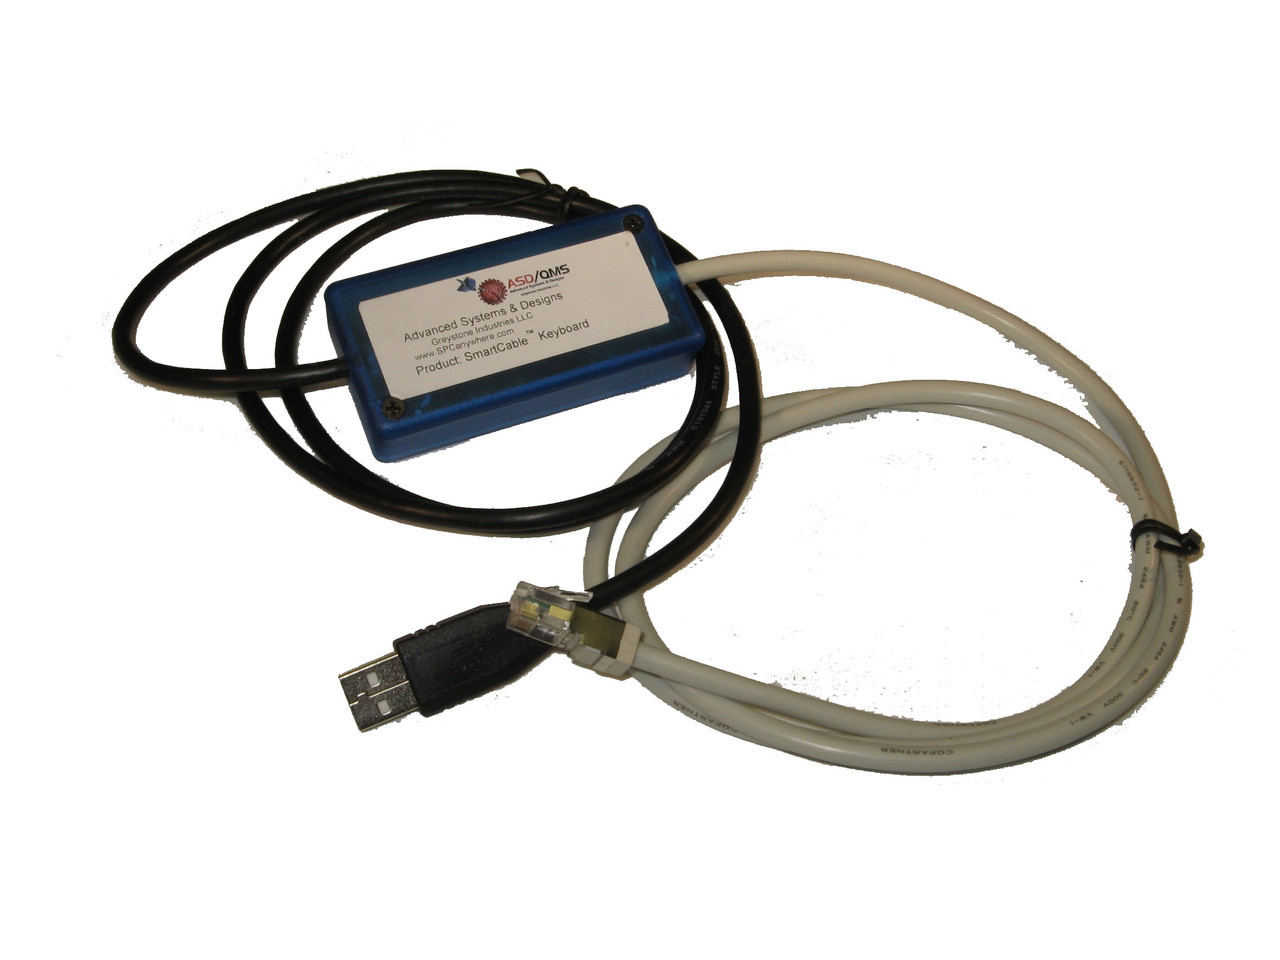 Mettler Toledo PS Digital Scale RS232 Excel Interface Cable